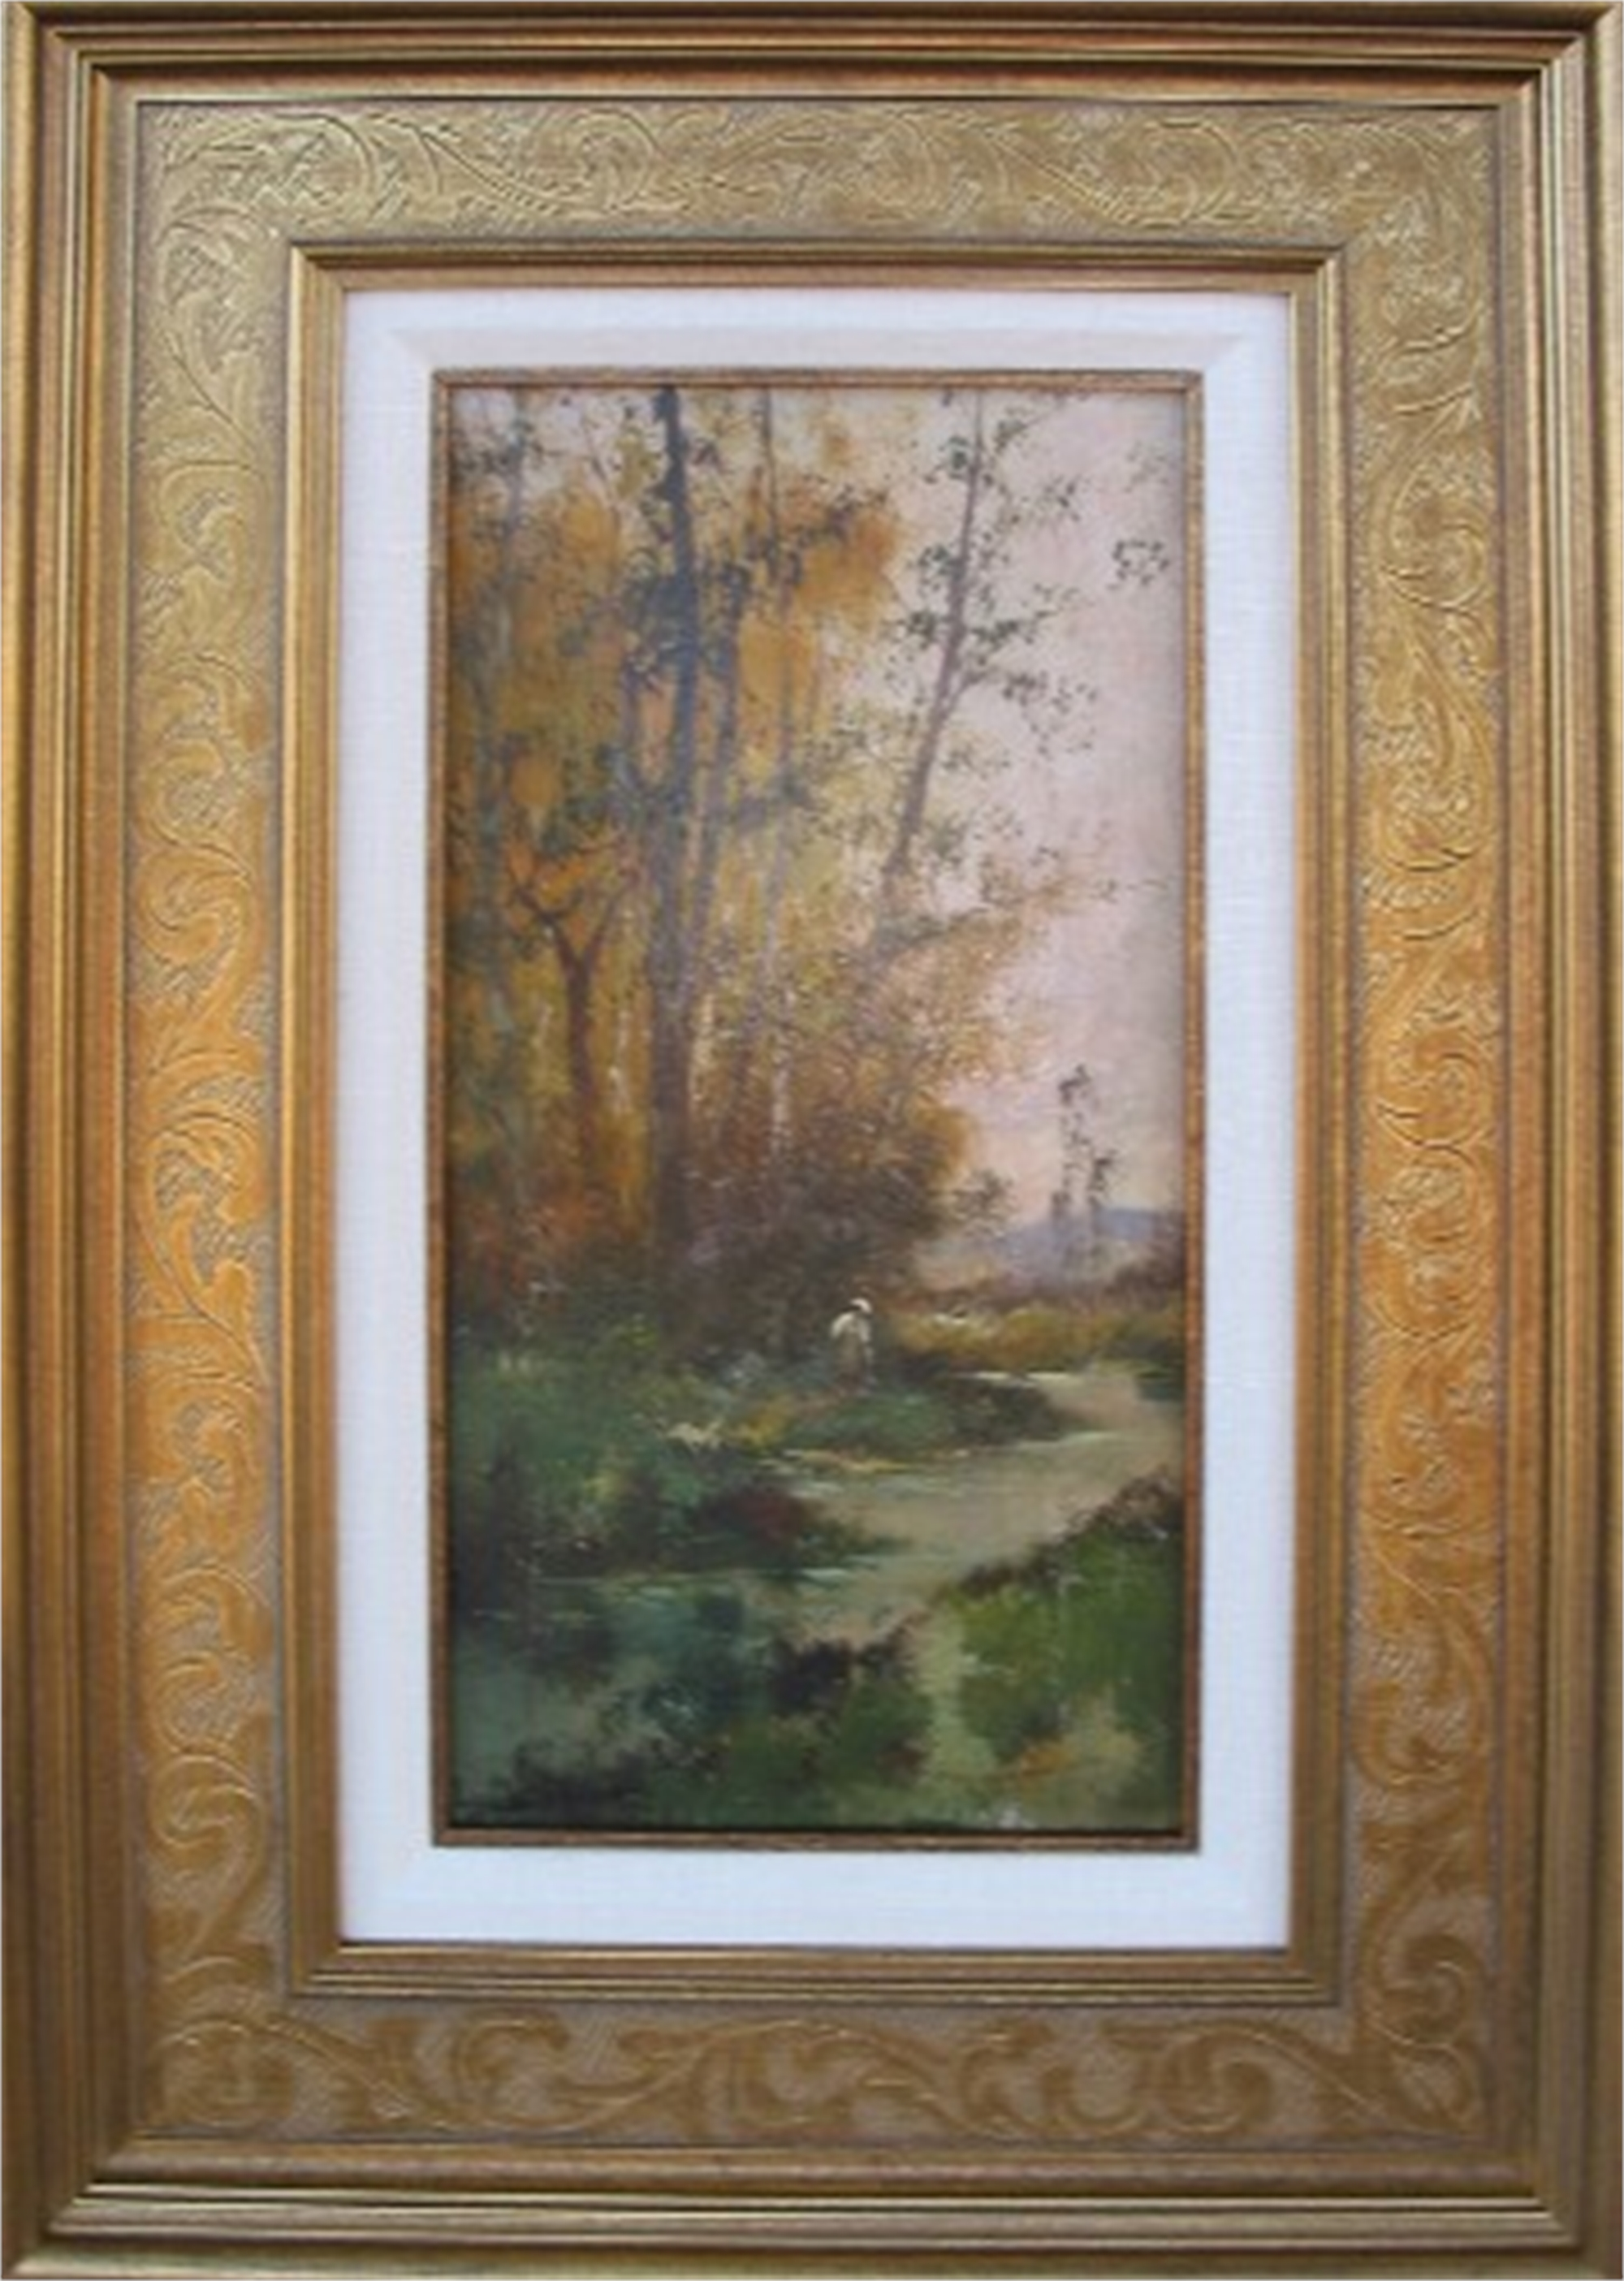 BY THE STREAM FRANCE by GALIEN-LALOUE